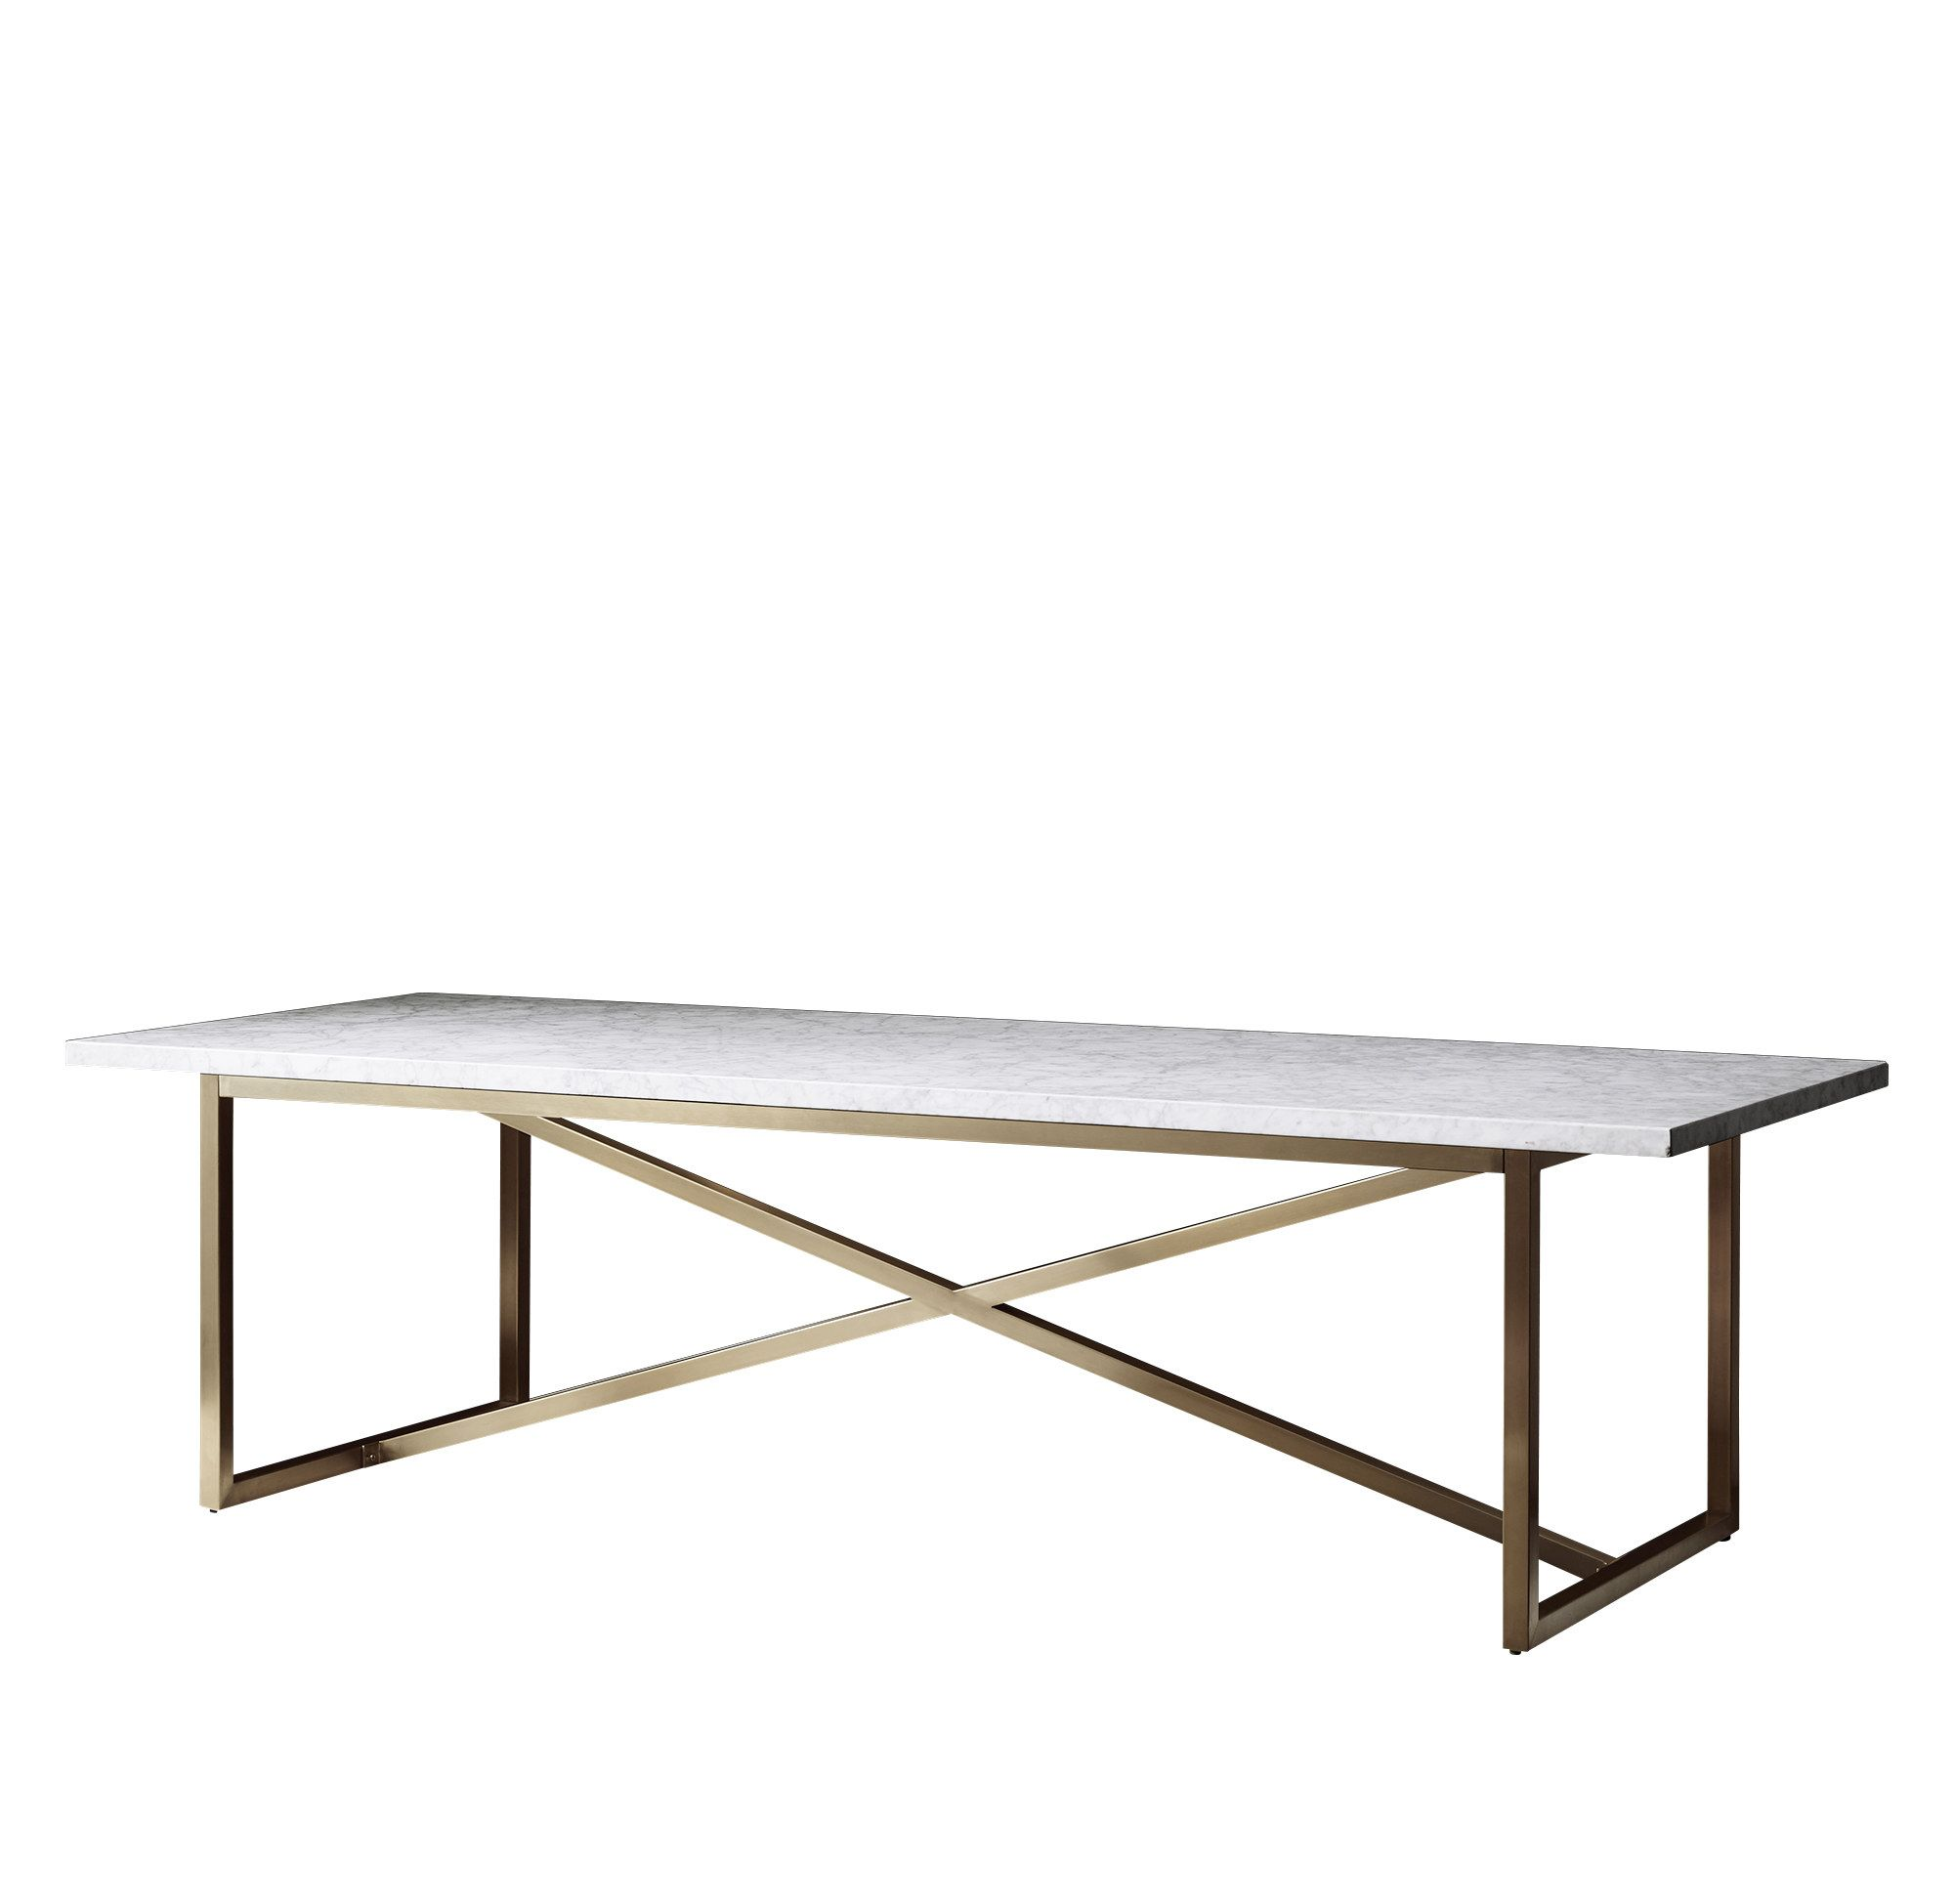 The Best Of RHs New Modern Line Into Interiors Pinterest - Restoration hardware modern dining table